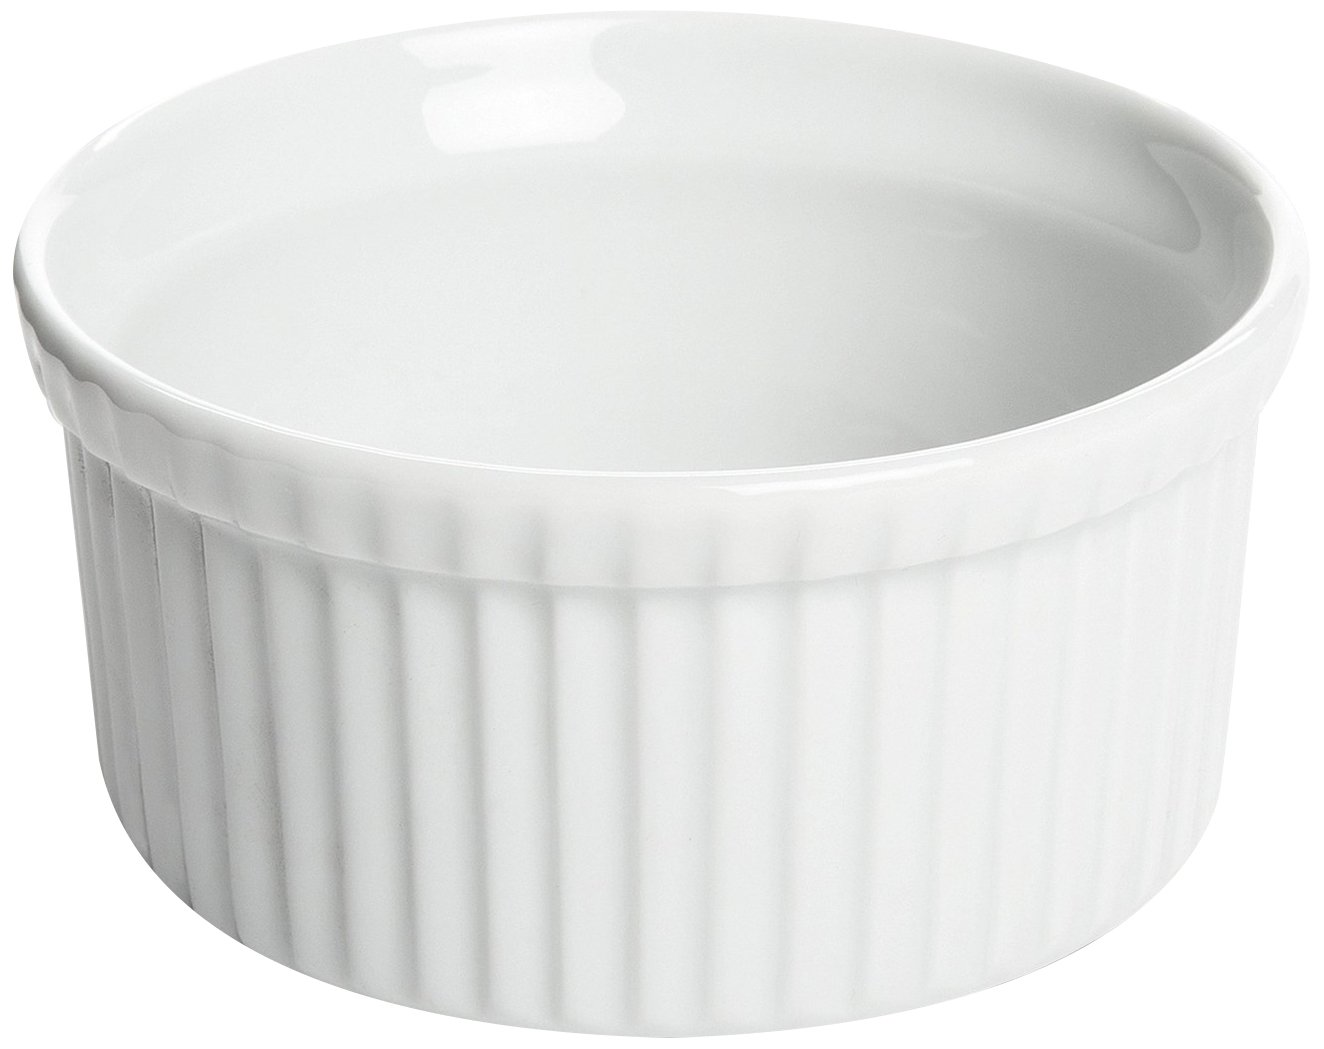 Fox Run 16-Ounce Souffle Dish, White by Fox Run